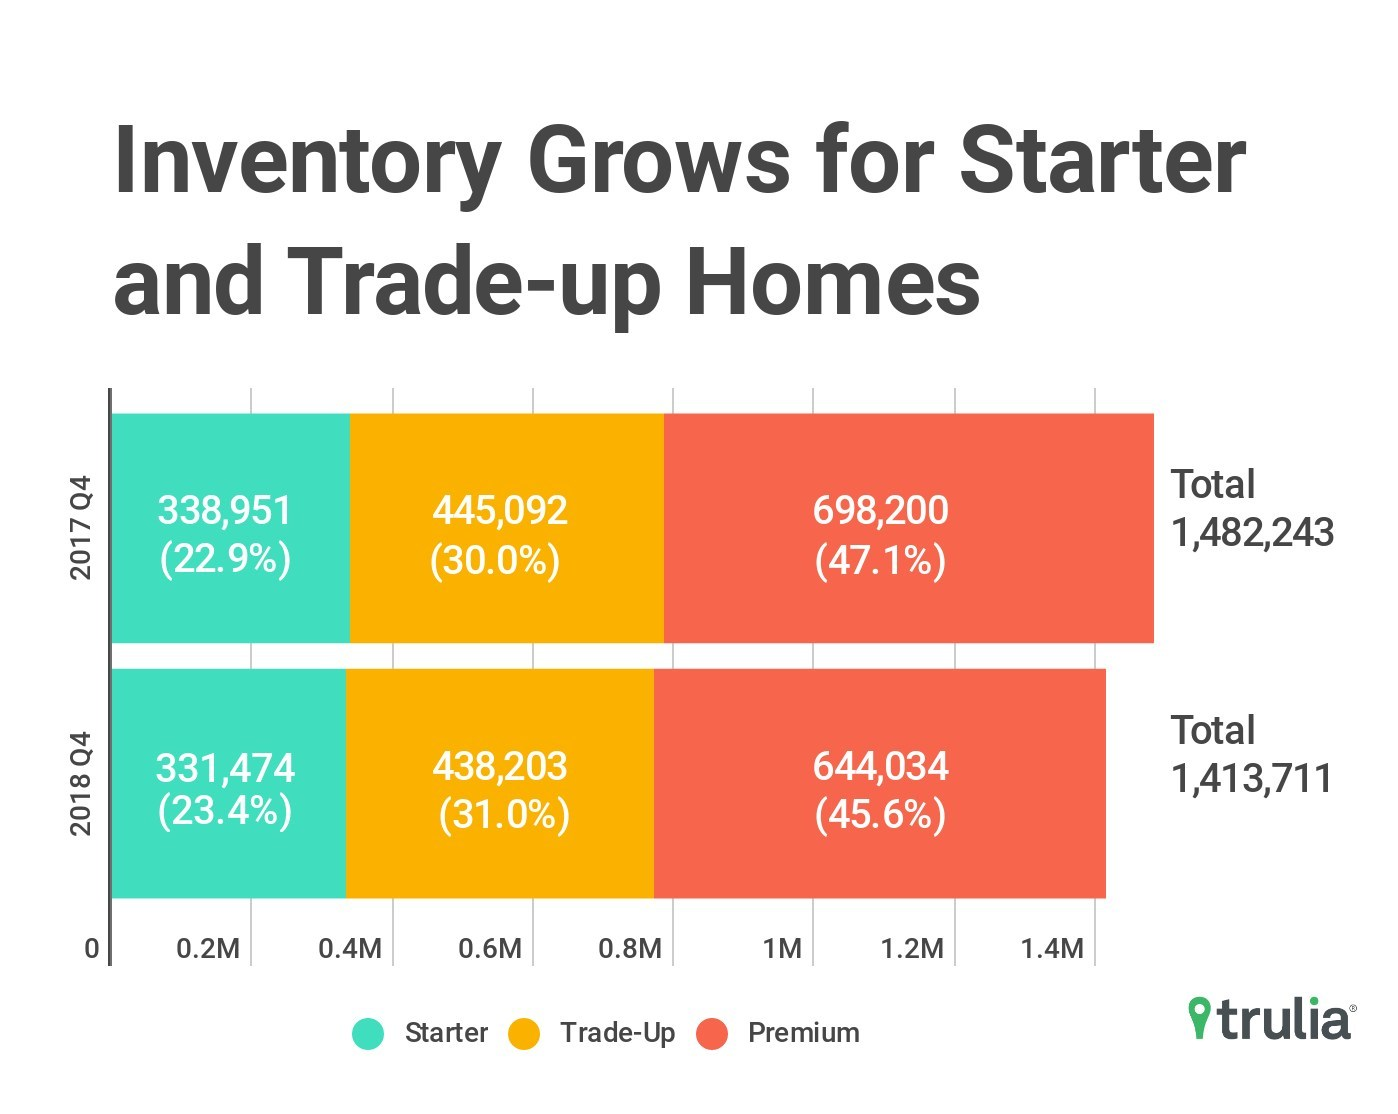 Trulia reports 4.6 percent year-over-year drop in the number of for-sale homes in the last three months of 2018. The drop in inventory is largely driven by the premium home segment where the number of for-sale homes fell 7.8 percent year-over-year, followed by modest declines across starter and trade-up homes.